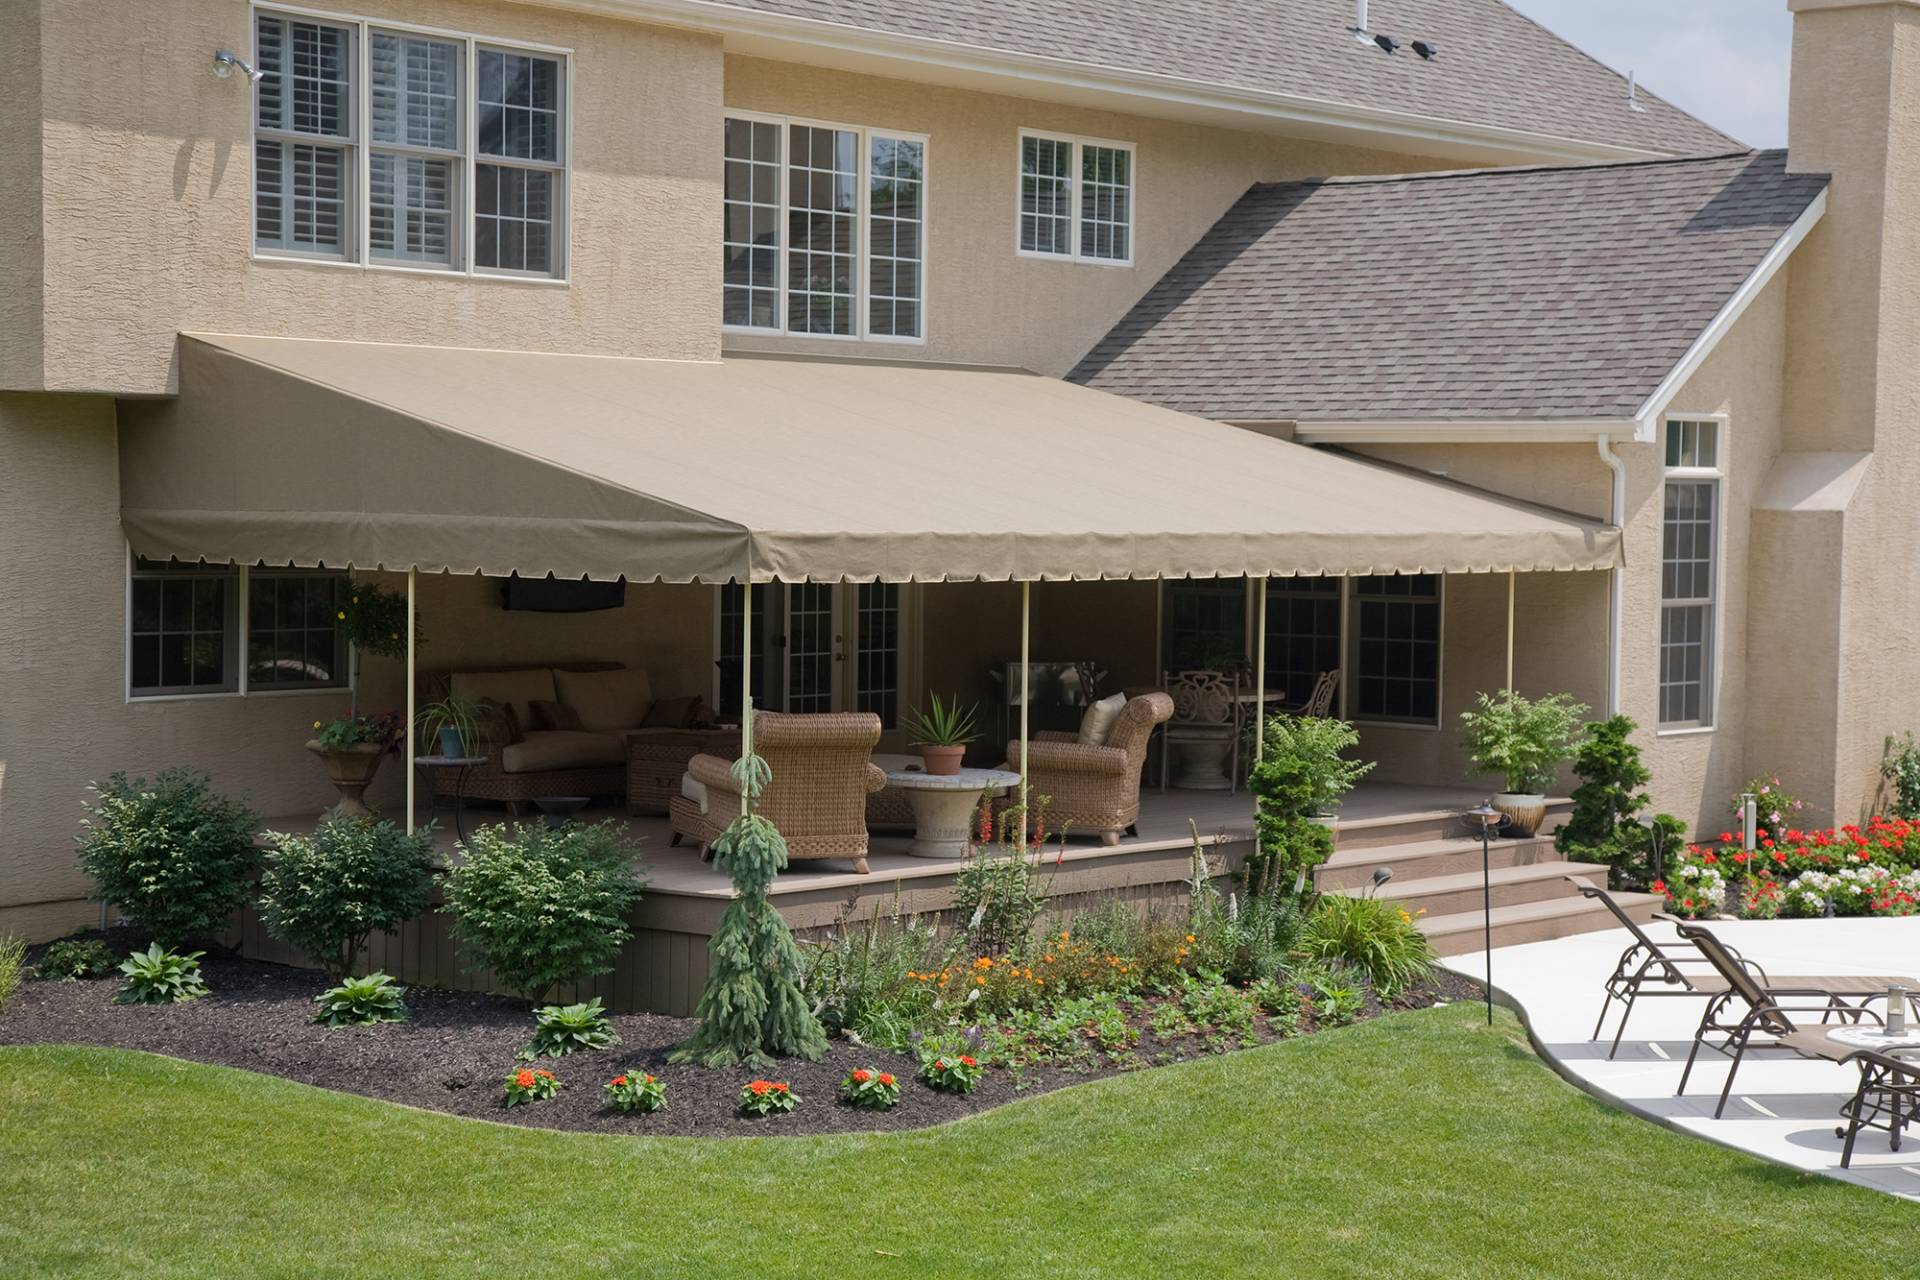 s kreider patio mount on canopy awning stationary a inc project roof canvas copy deck attachment service